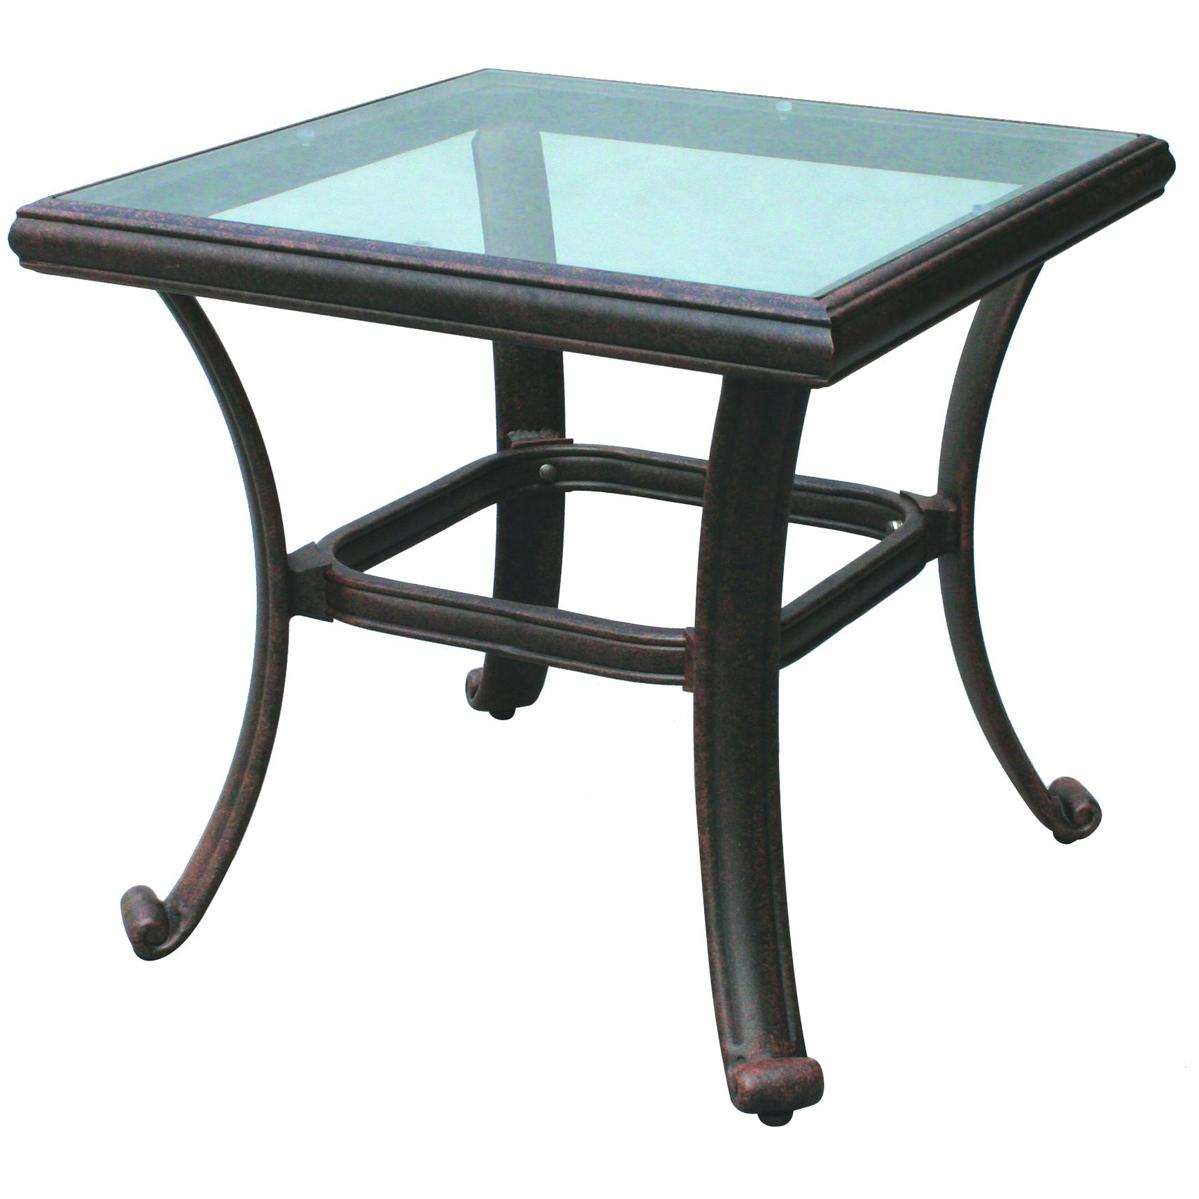 Darlee Series 50 Cast Aluminum Patio End Table With Glass Top - Antique Bronze at Sears.com